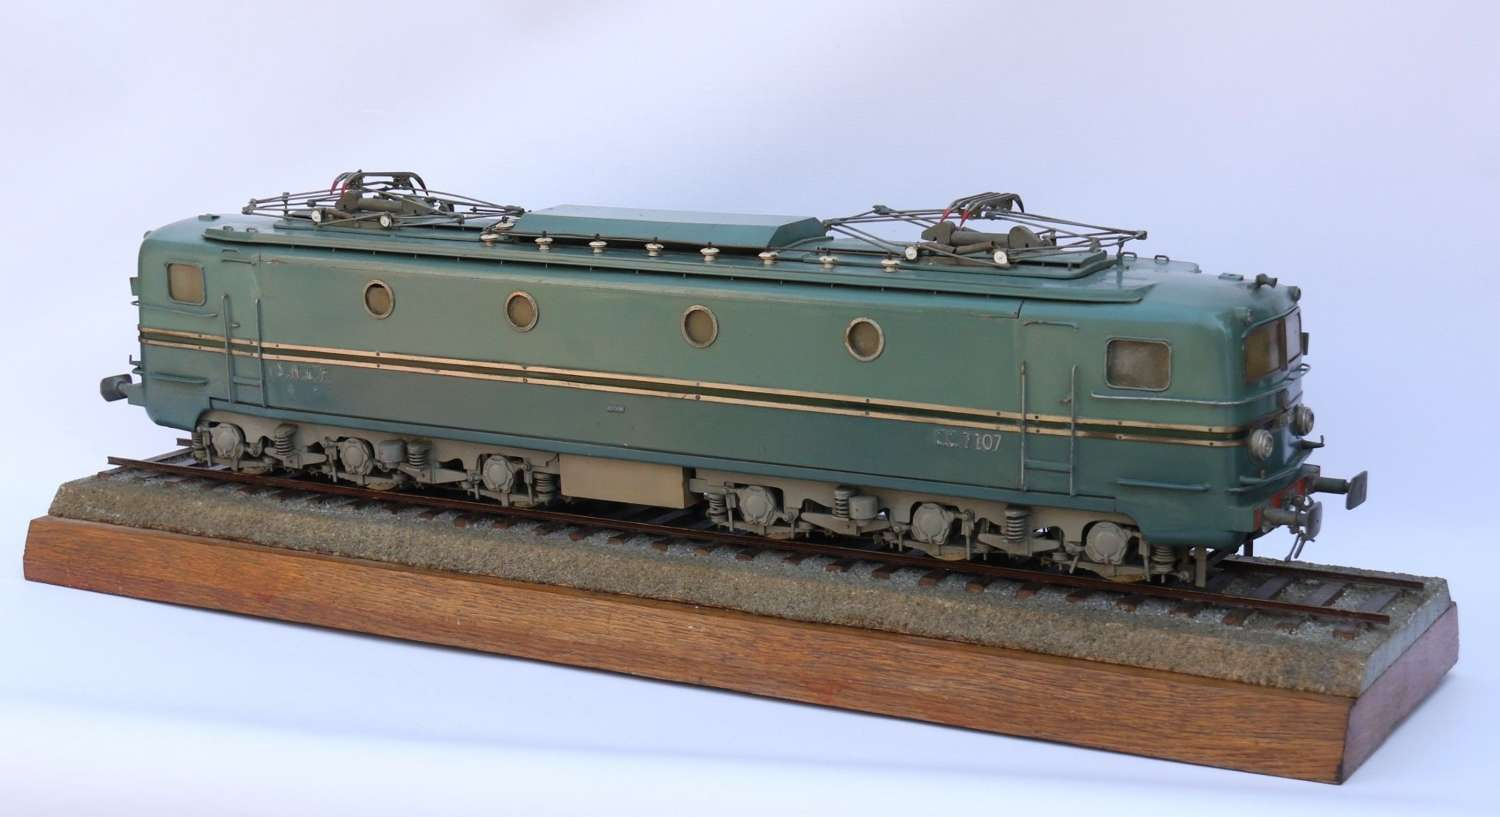 A Fine Scale Model Of An Electric Train